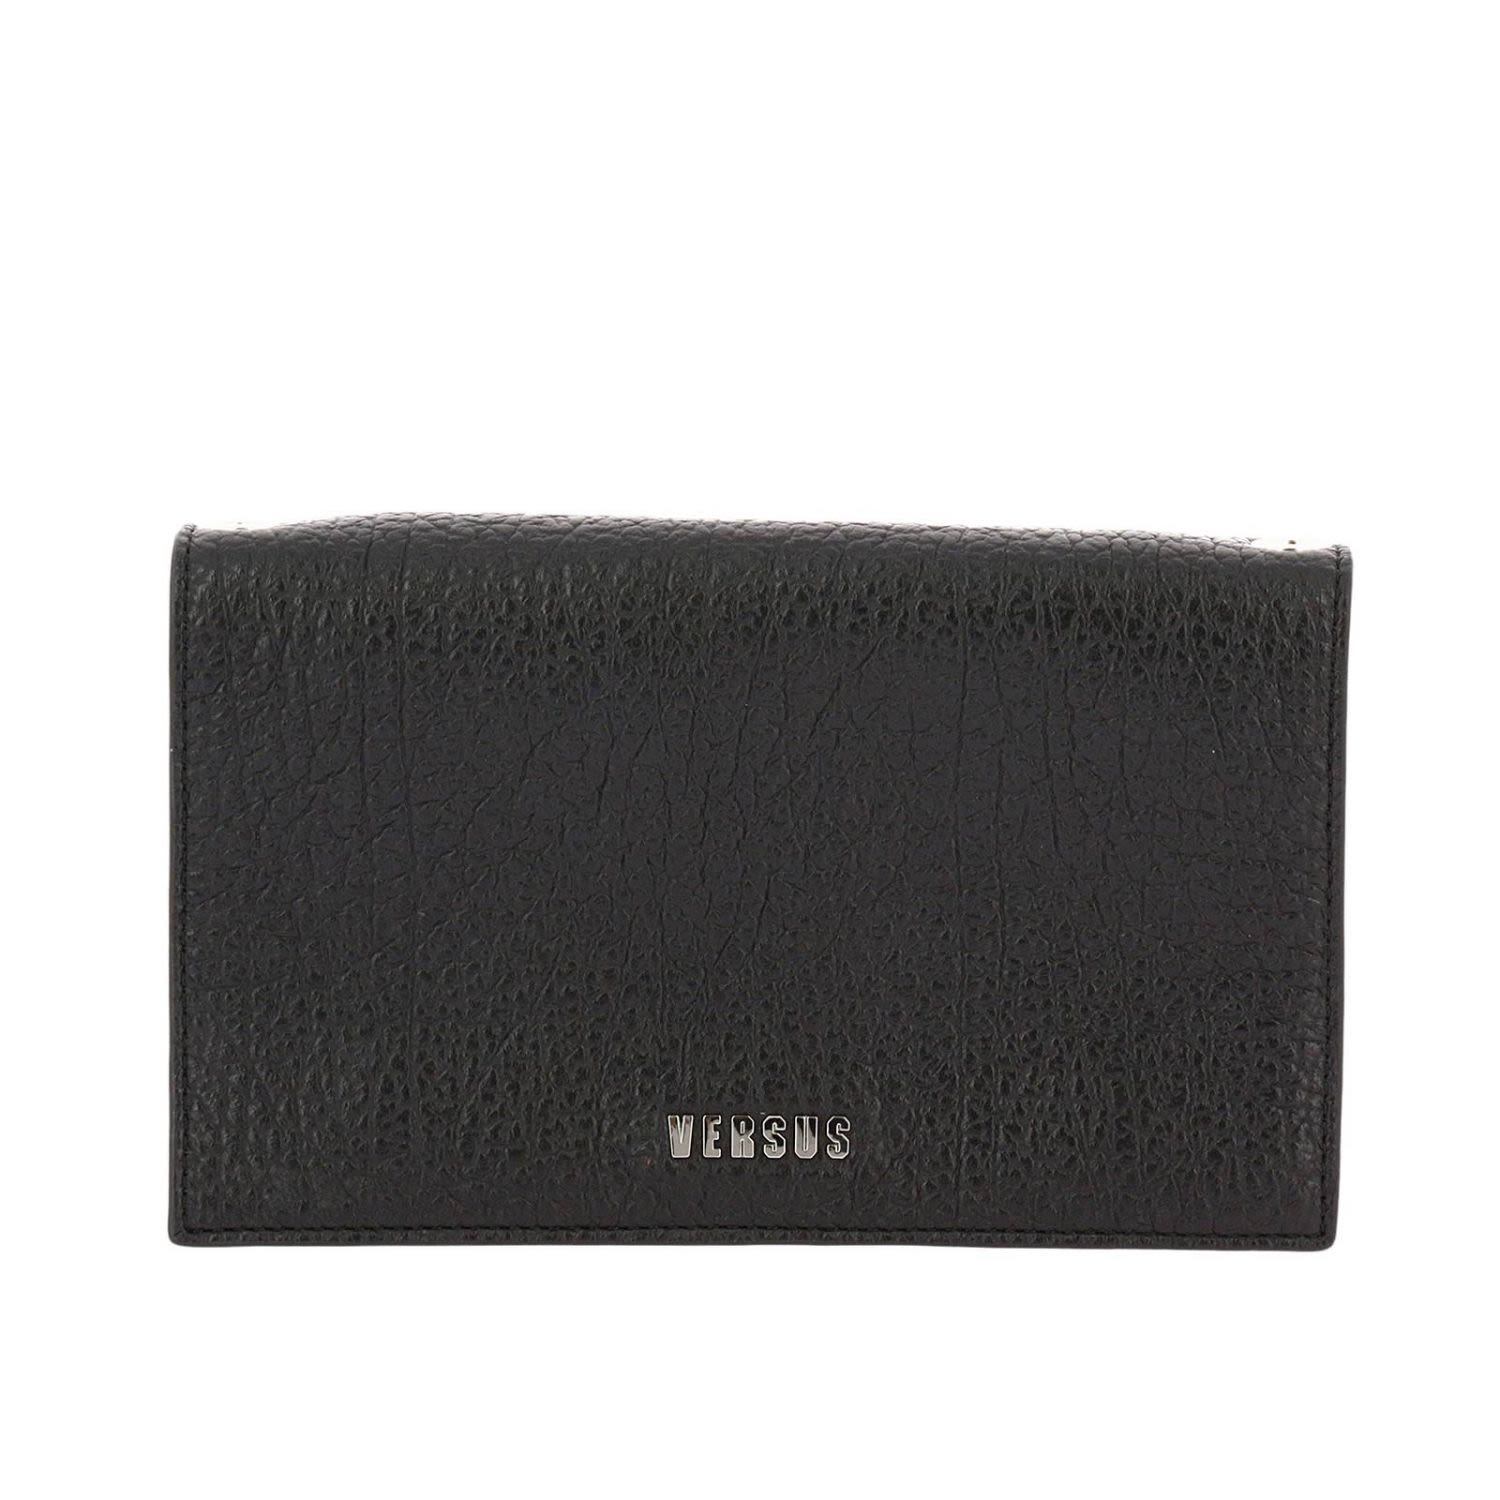 textured logo shoulder bag - Black Versus F7TLRrCa